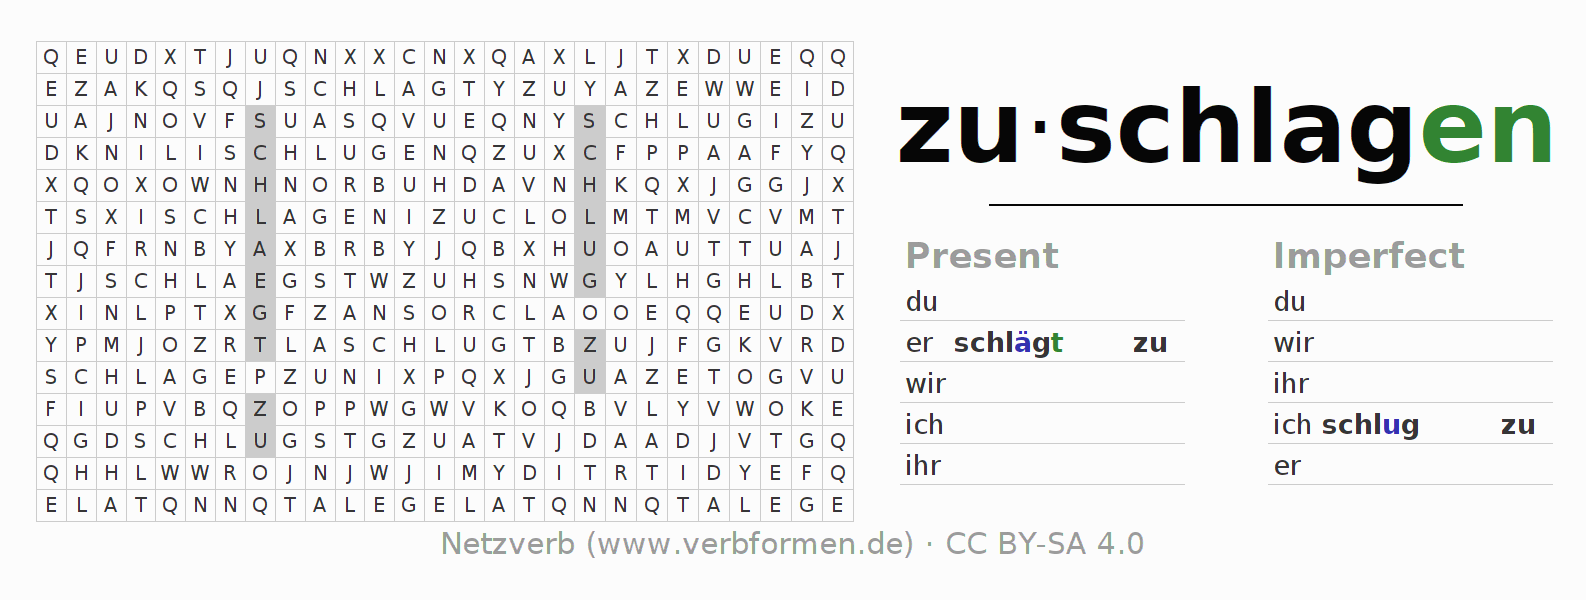 Word search puzzle for the conjugation of the verb zuschlagen (ist)